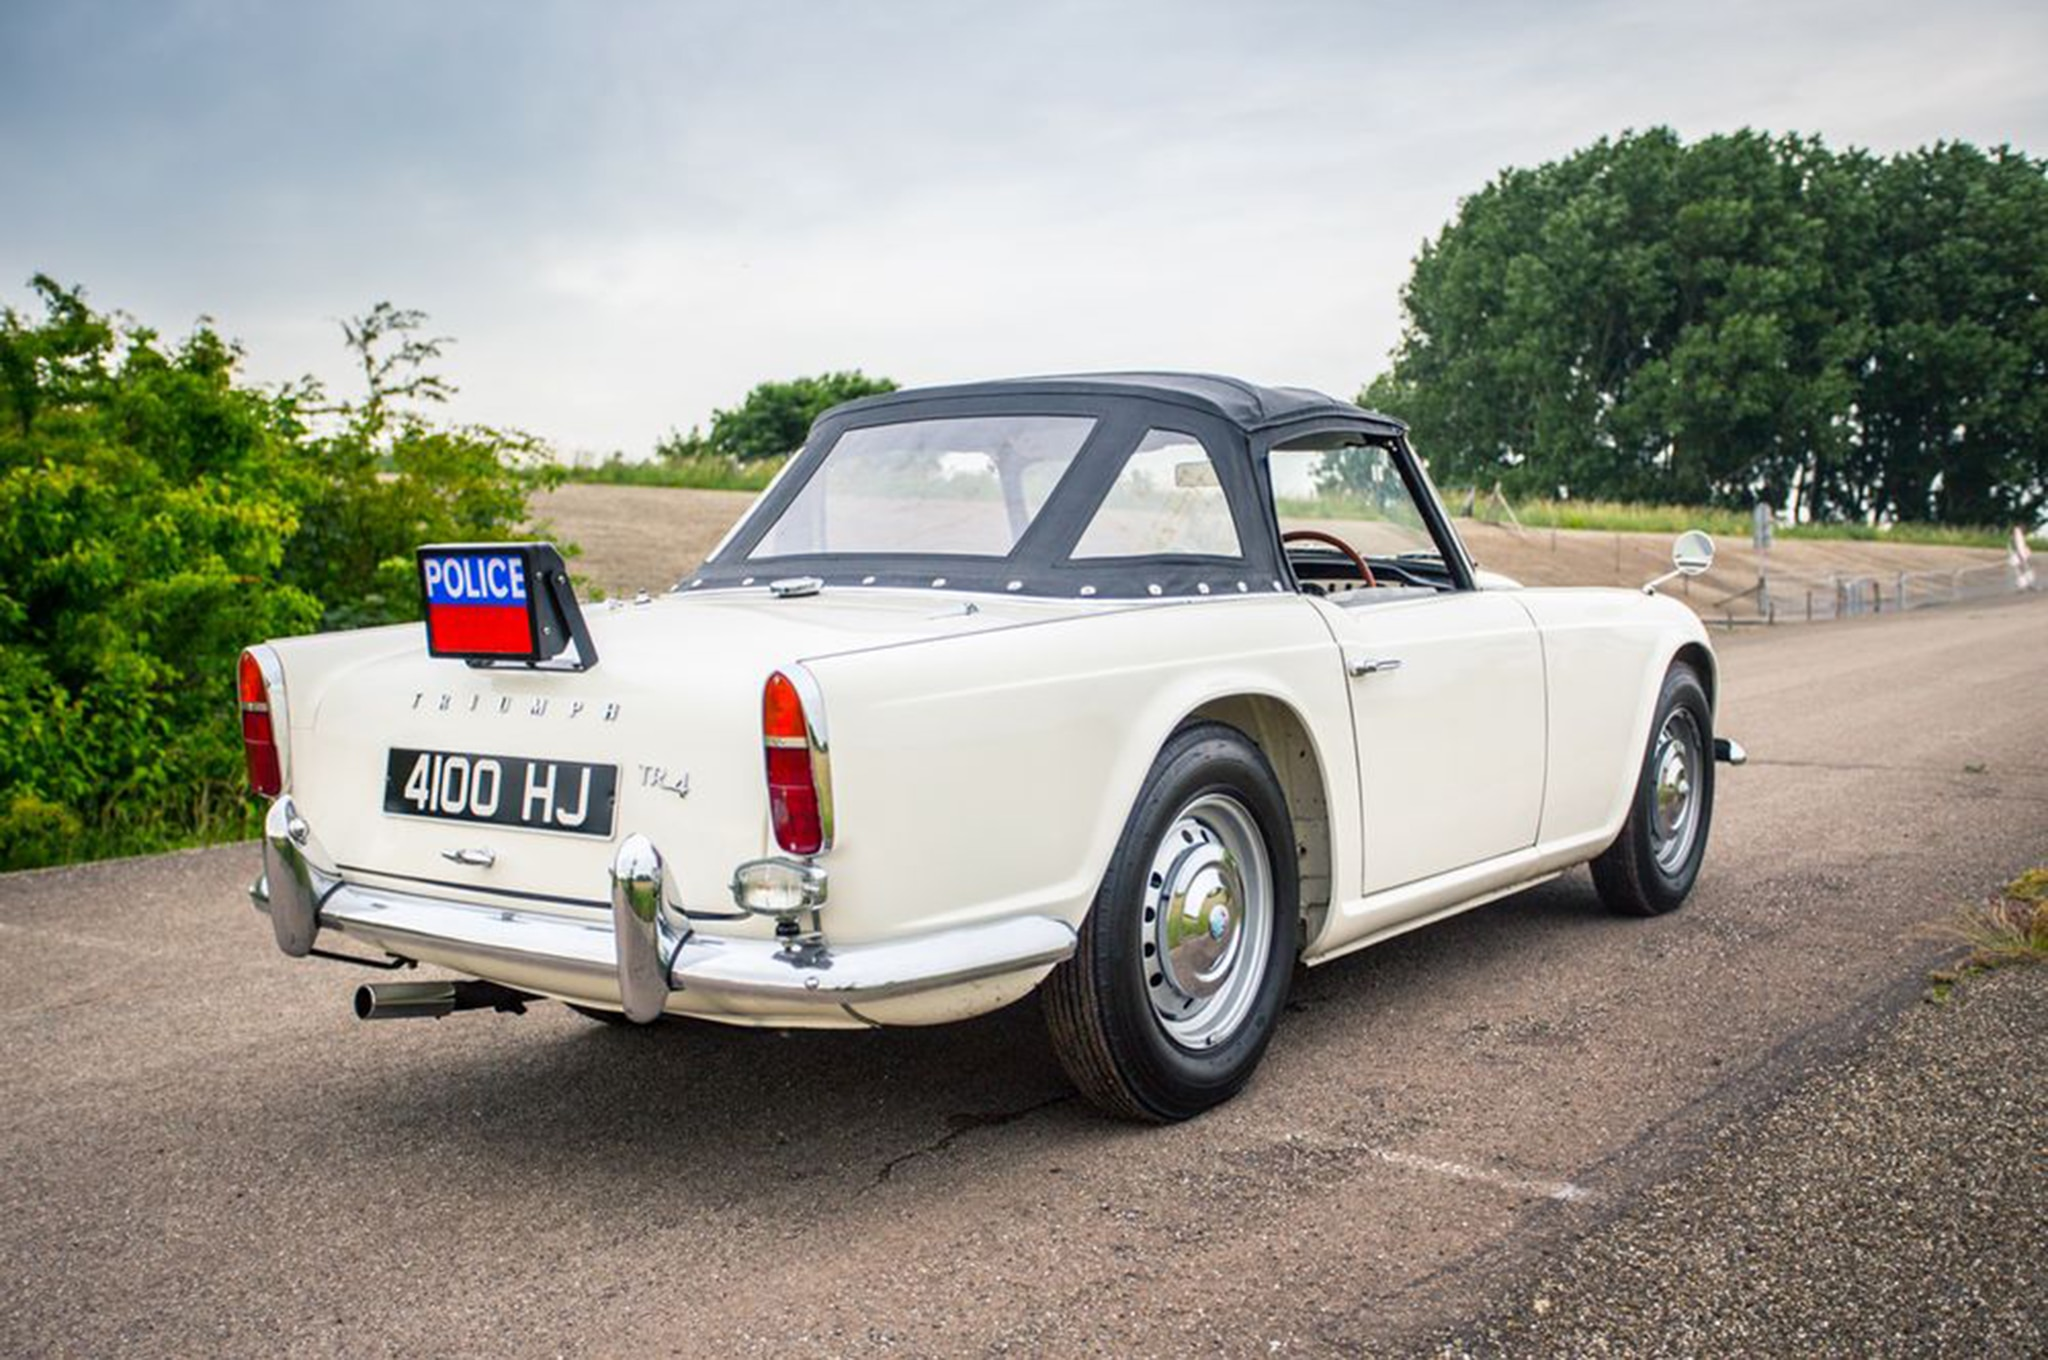 This Police Spec 1962 Triumph Tr4 Is The Coolest Pursuit Vehicle We